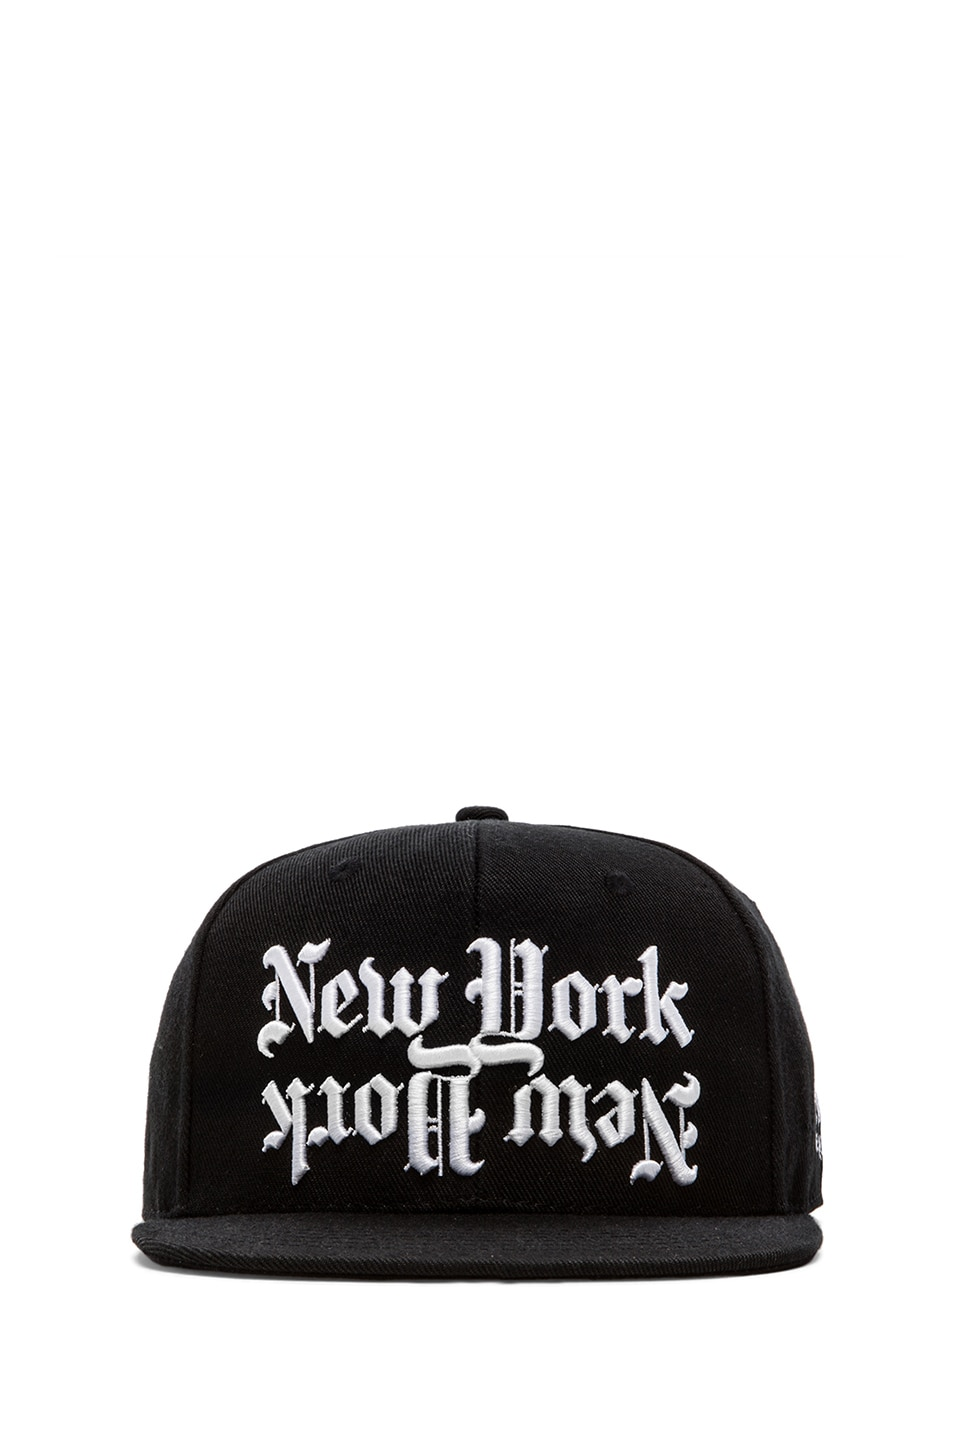 40 OZ NY Dishonor Snapback in Black